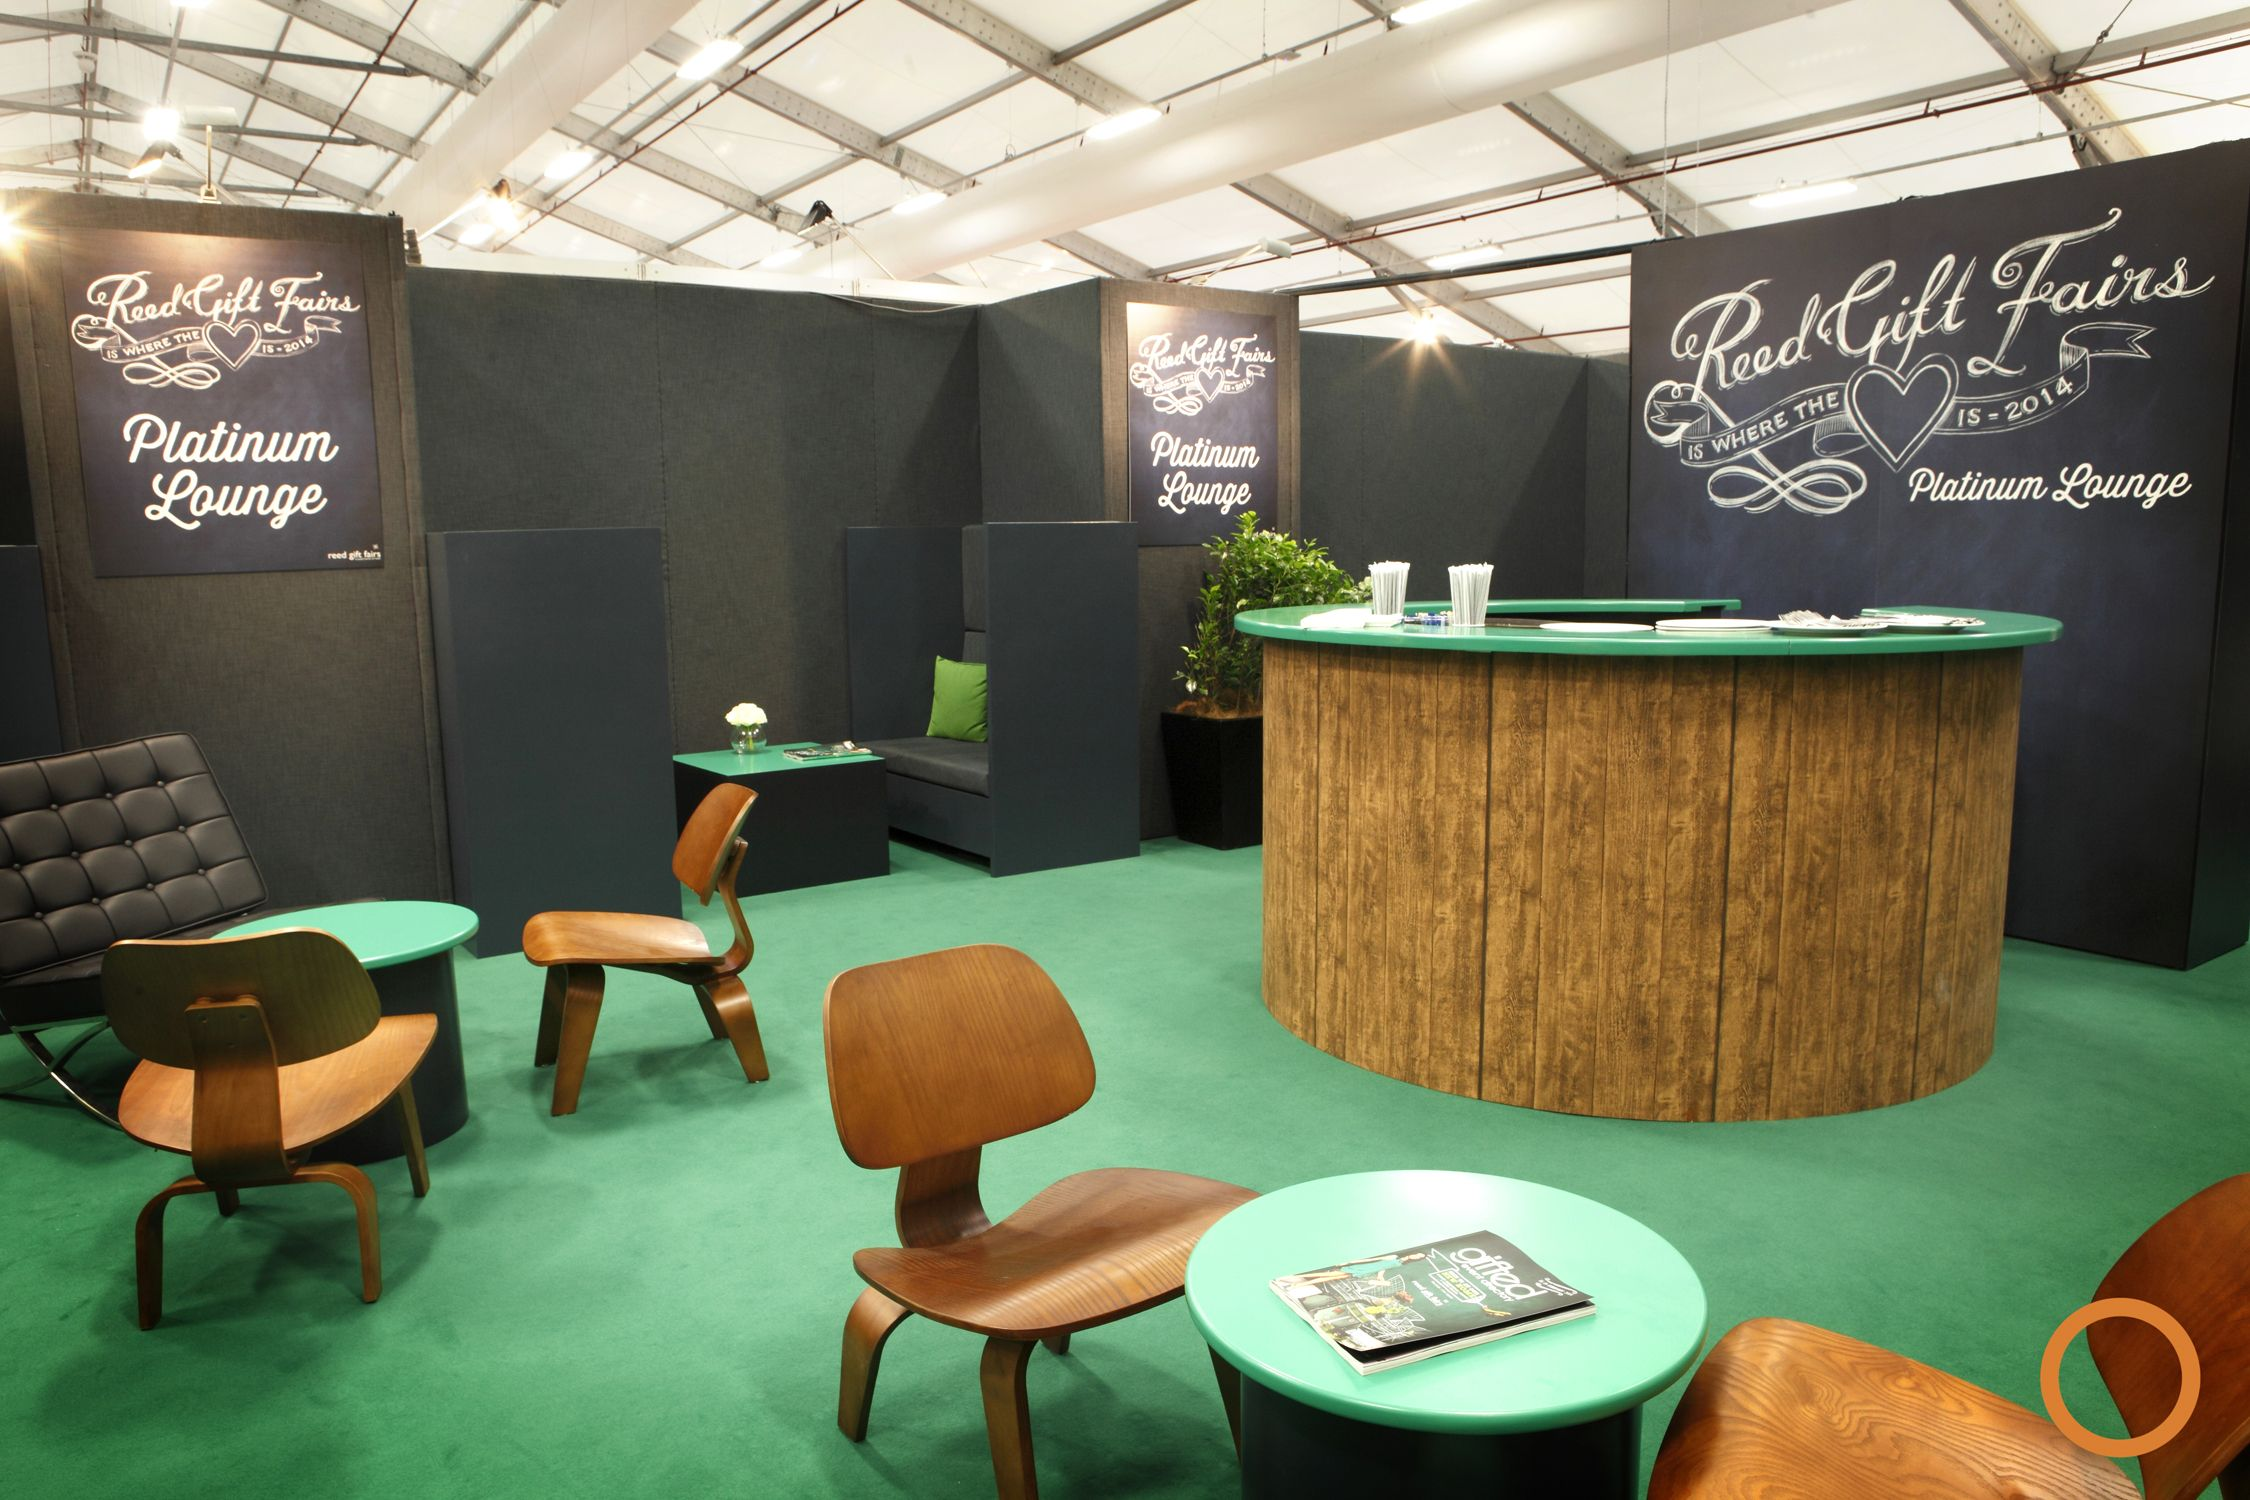 Reed Gift Fairs Sydney 2014 exhibition central VIP Room